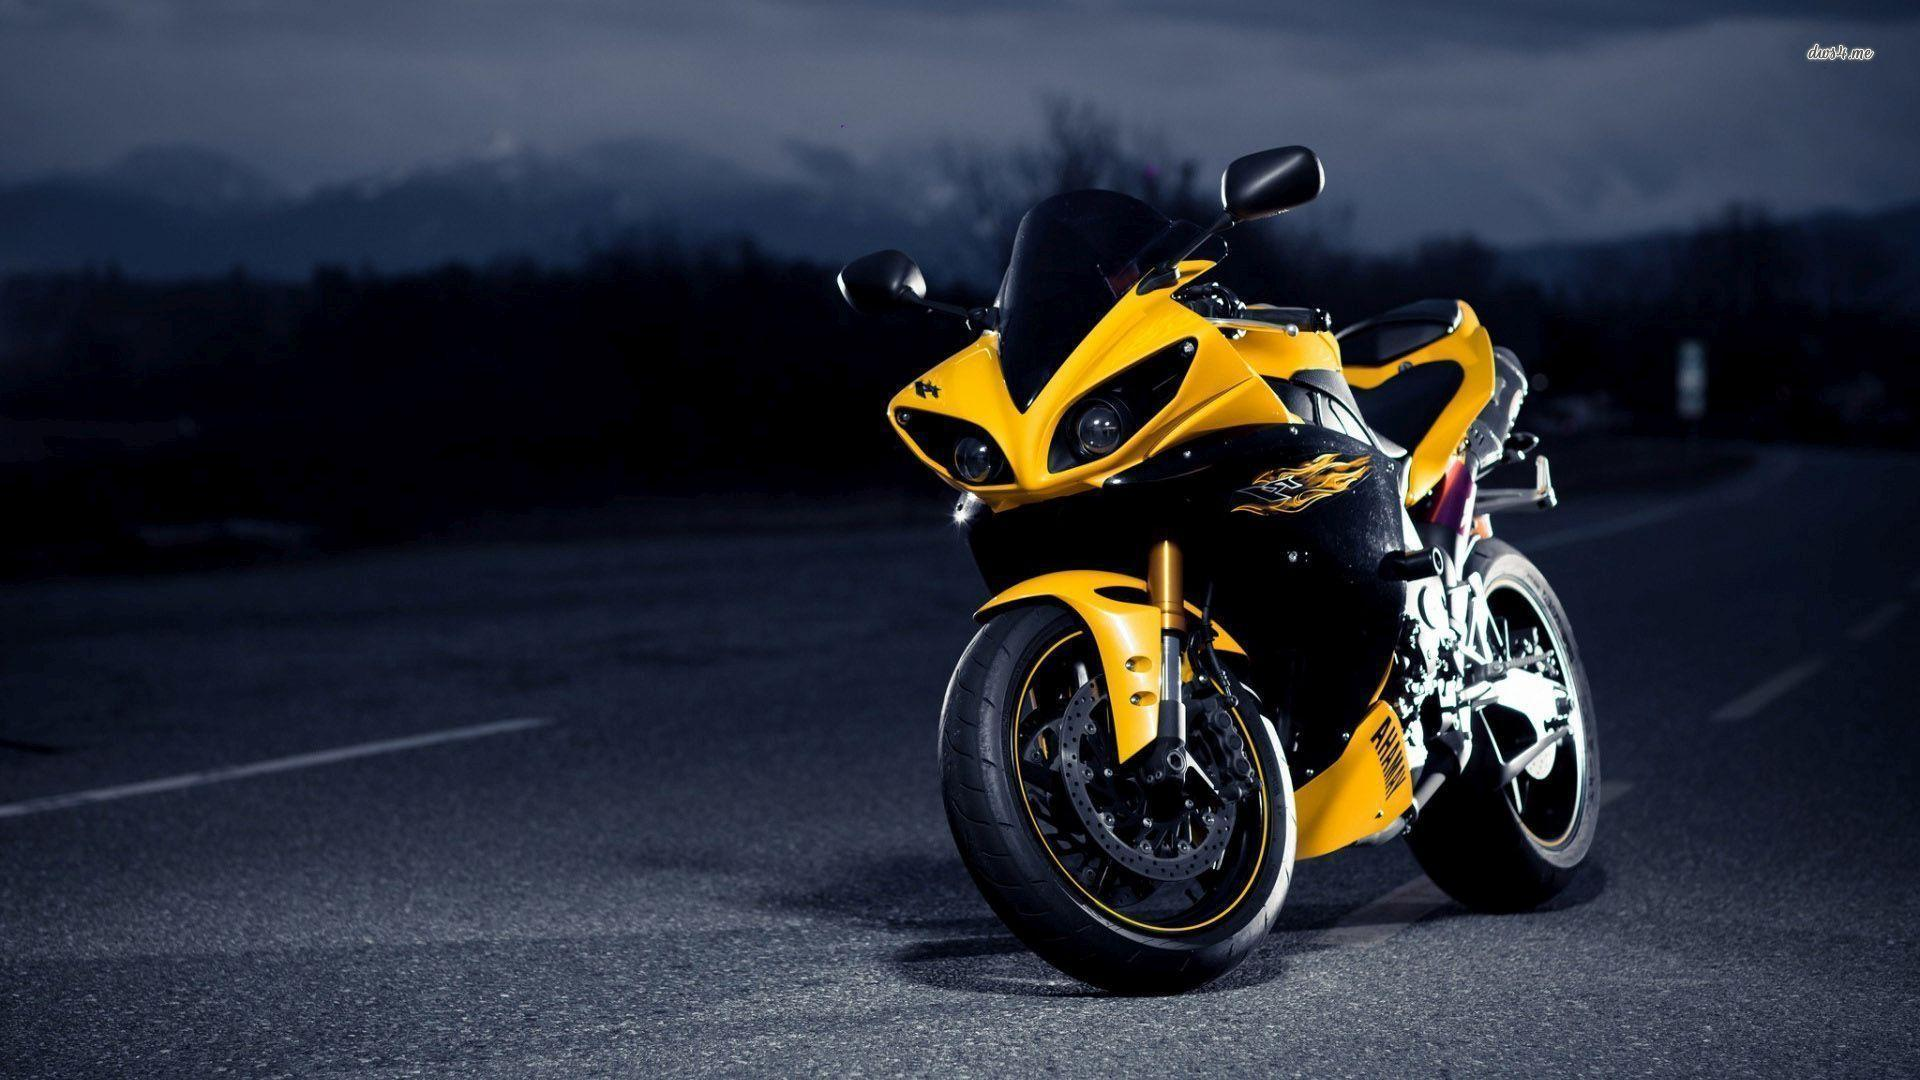 yamaha wallpapers for desktop-#42